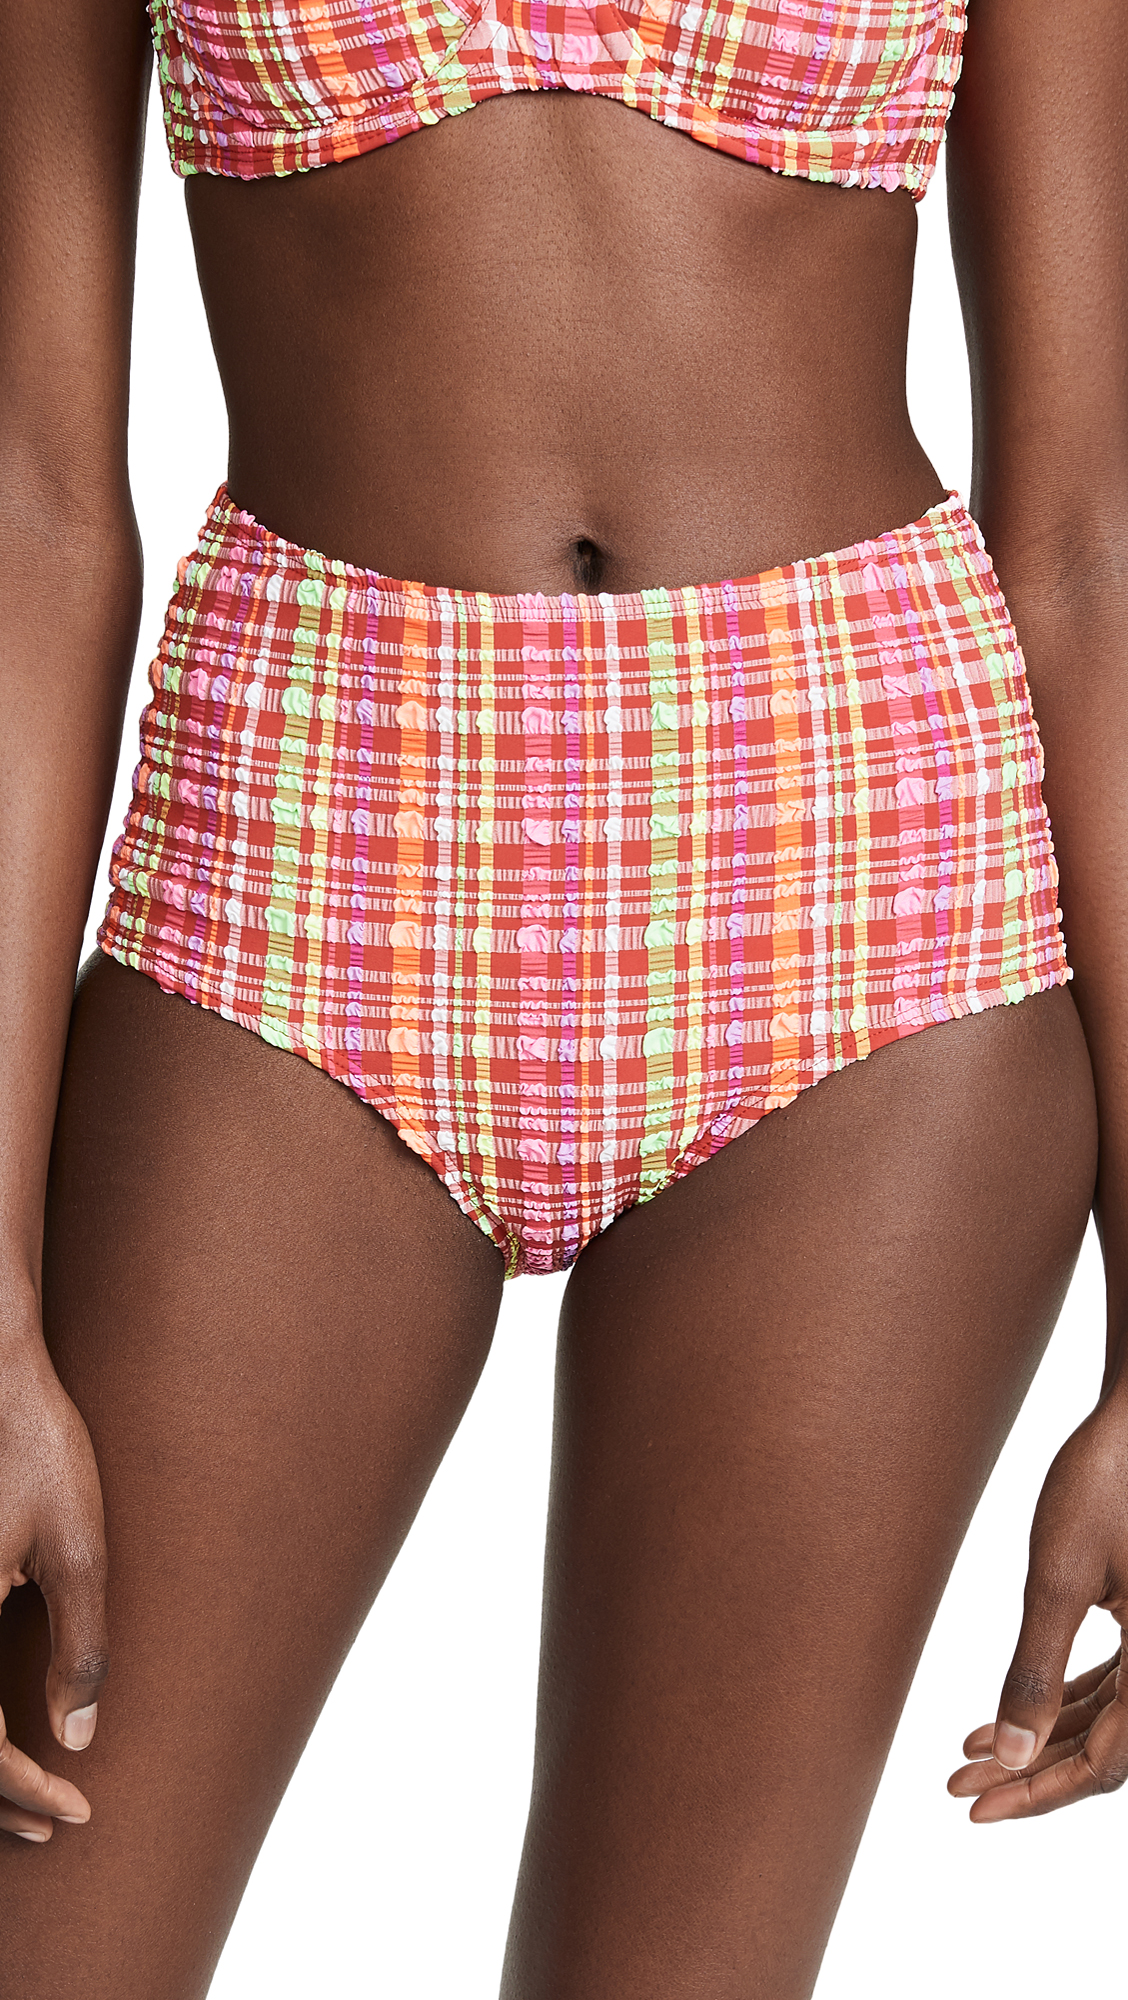 Diane von Furstenberg High-Waisted Bikini Bottoms In Red Multi